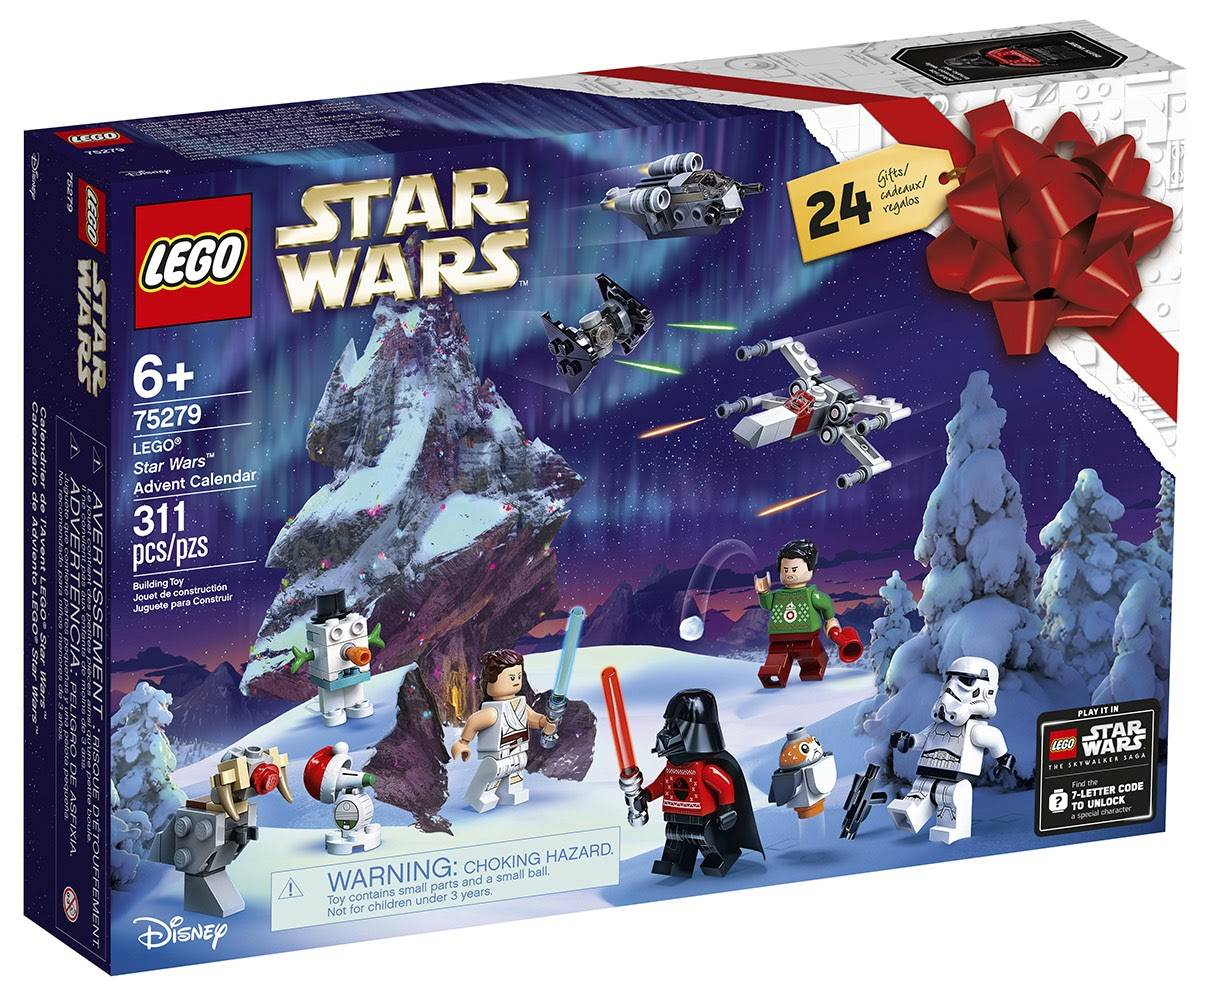 More New LEGO Star Wars Sets Announced in Celebration of Upcoming